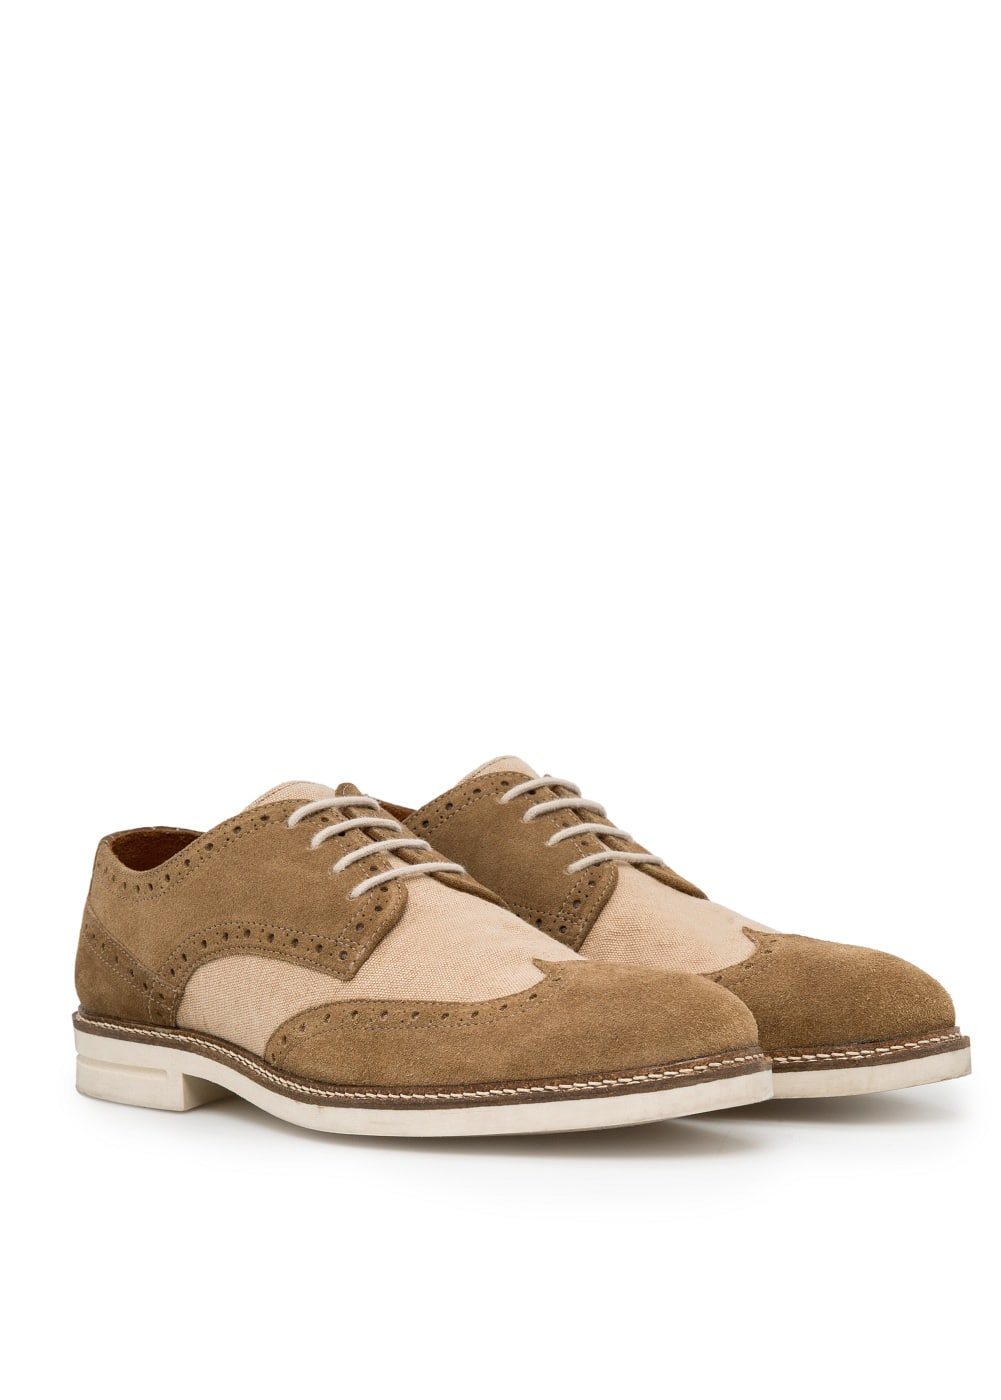 Suede and canvas brogue blucher